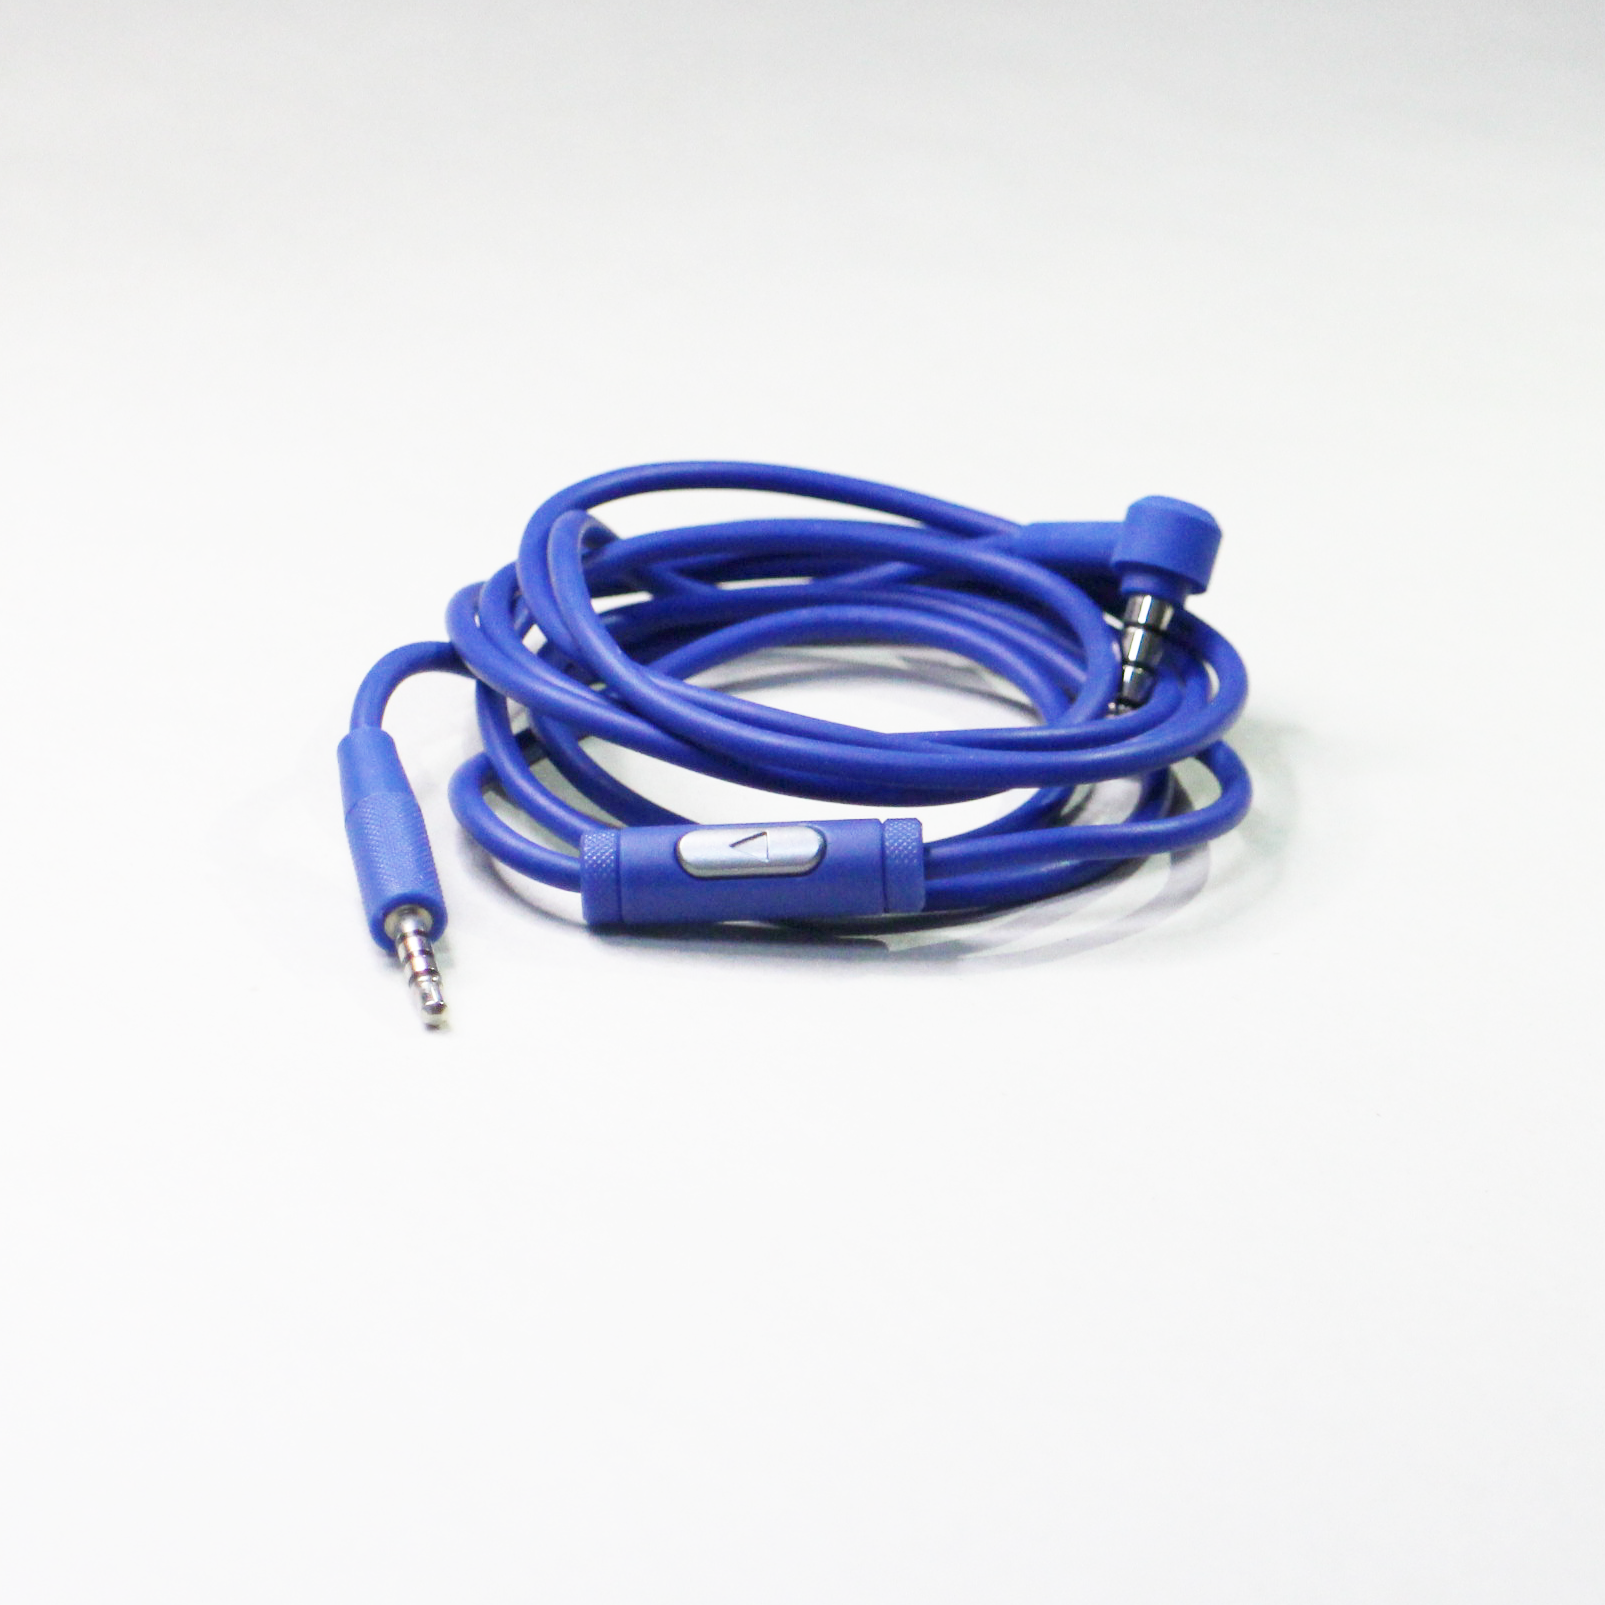 JBL E30 Cable with remote controller for smartphone